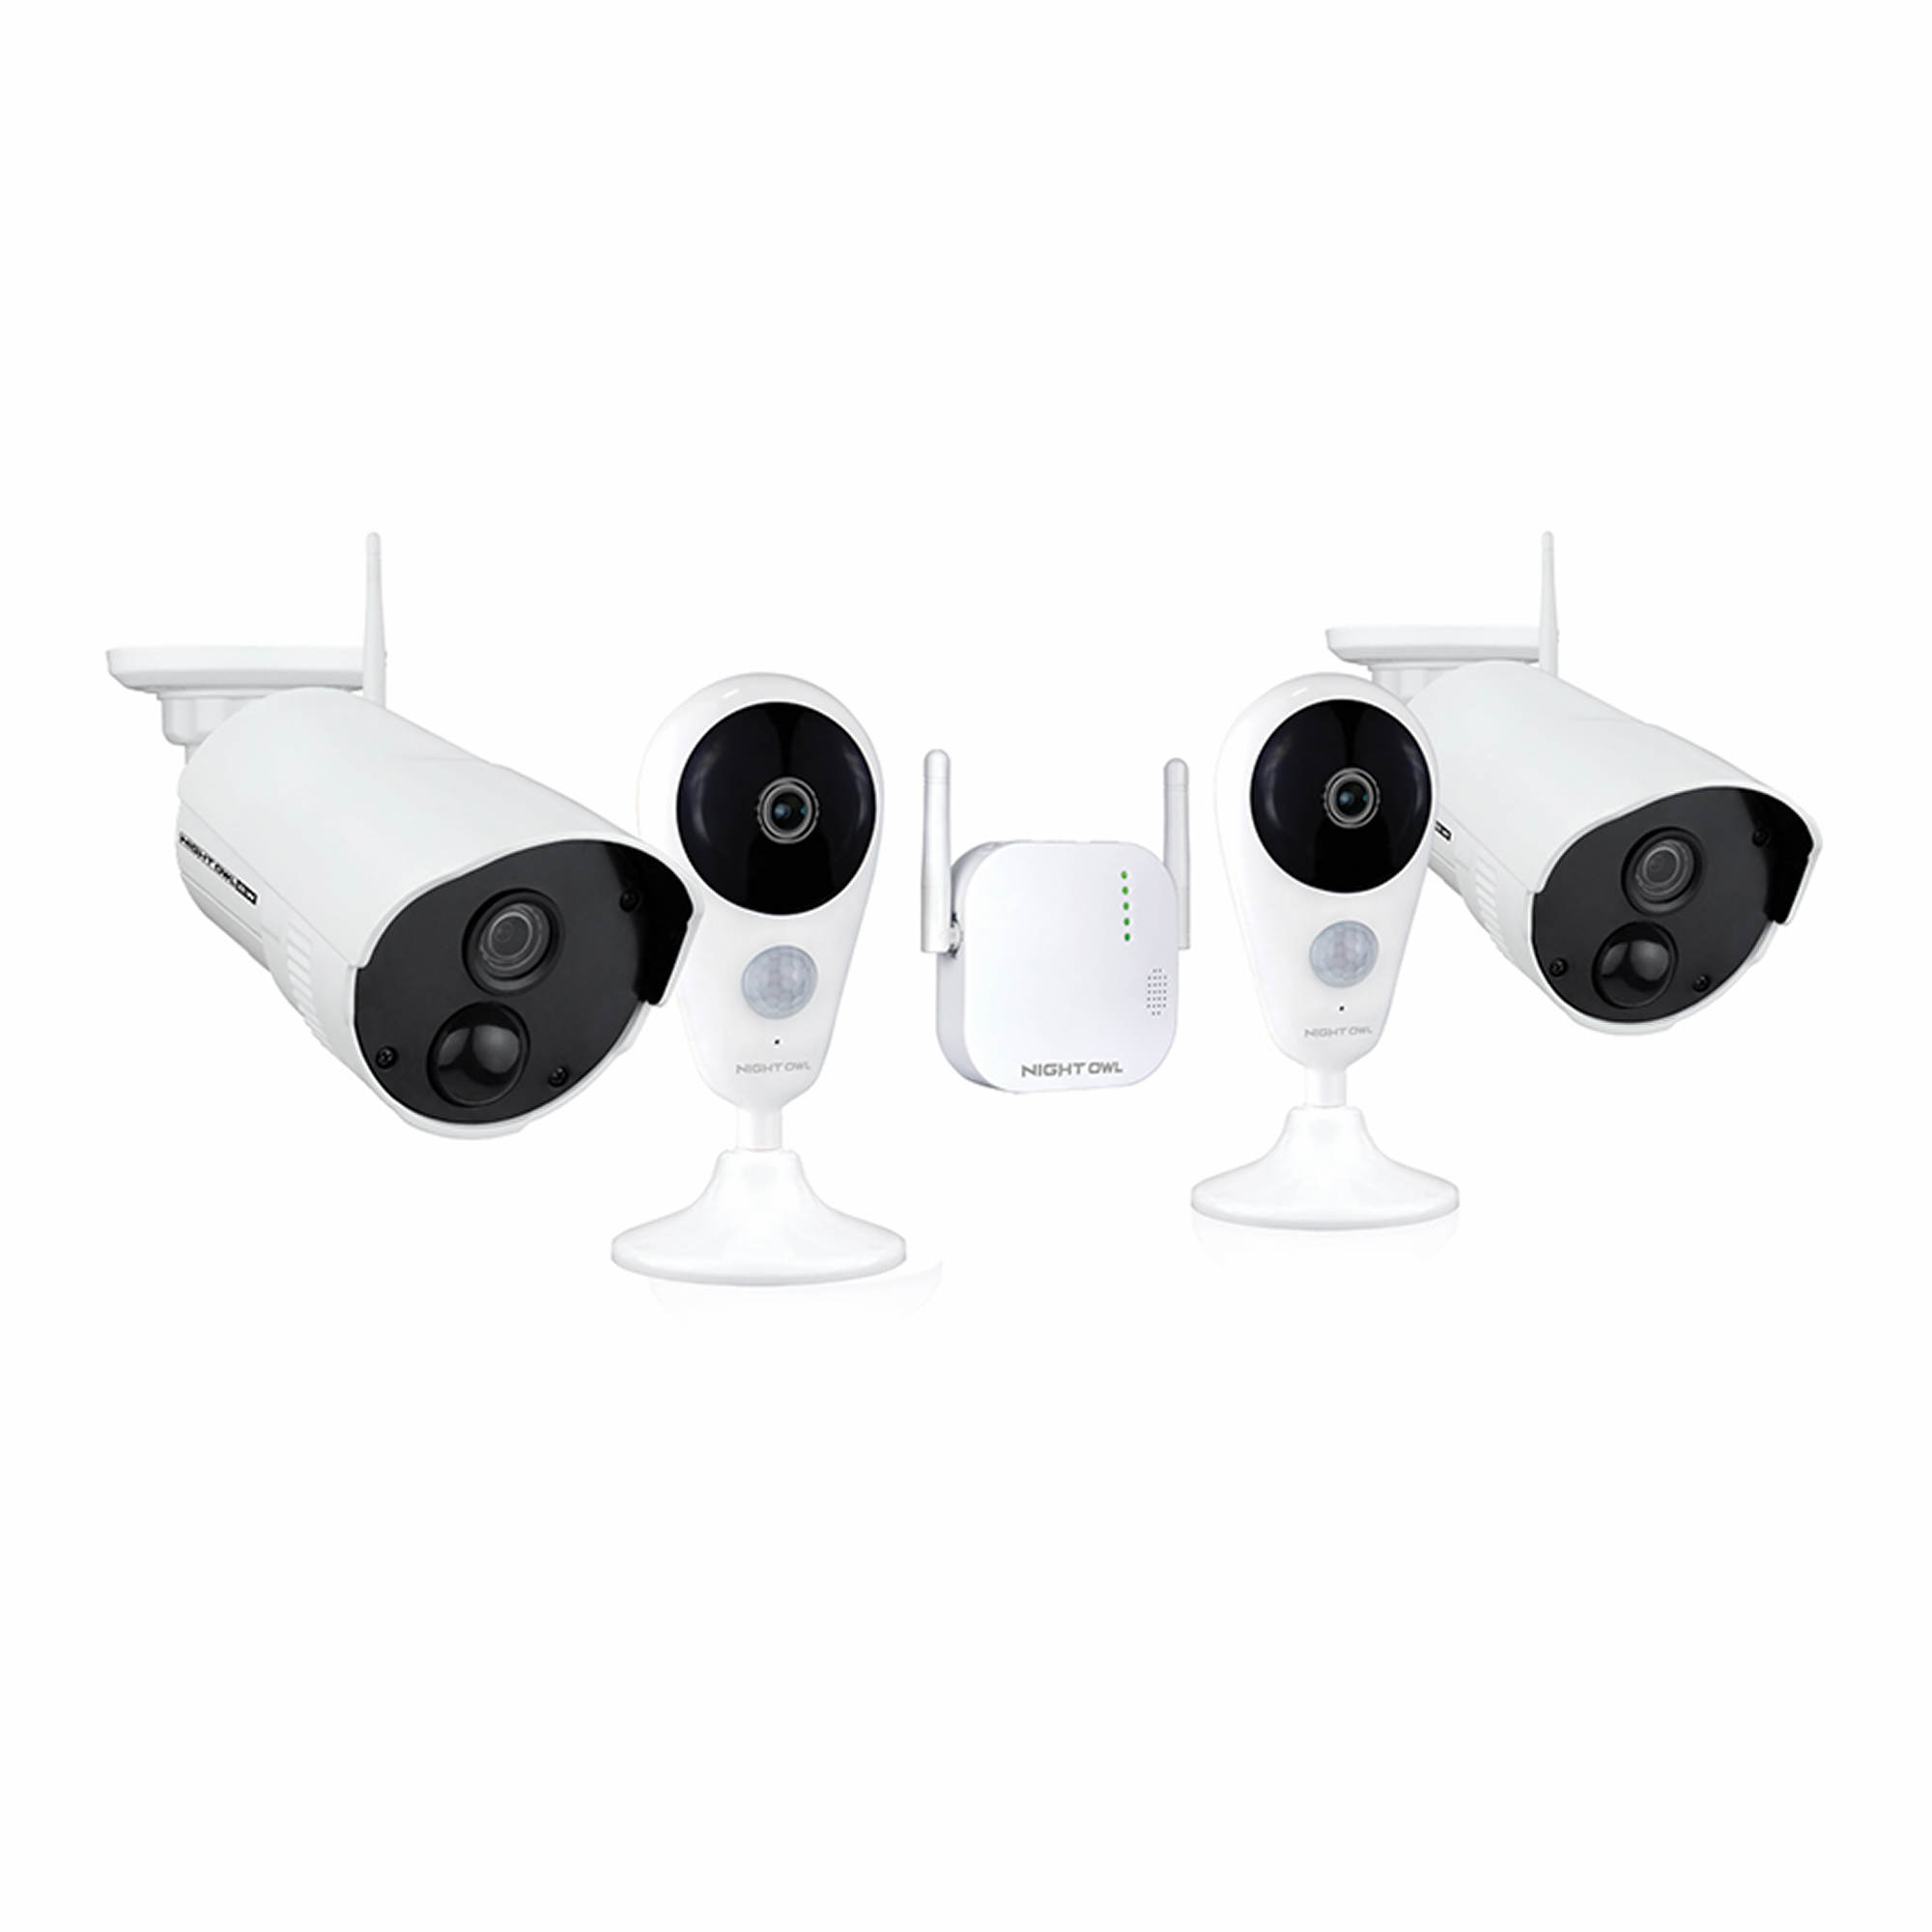 Night Owl 4 Camera 4 Channel 1080p Wireless Security